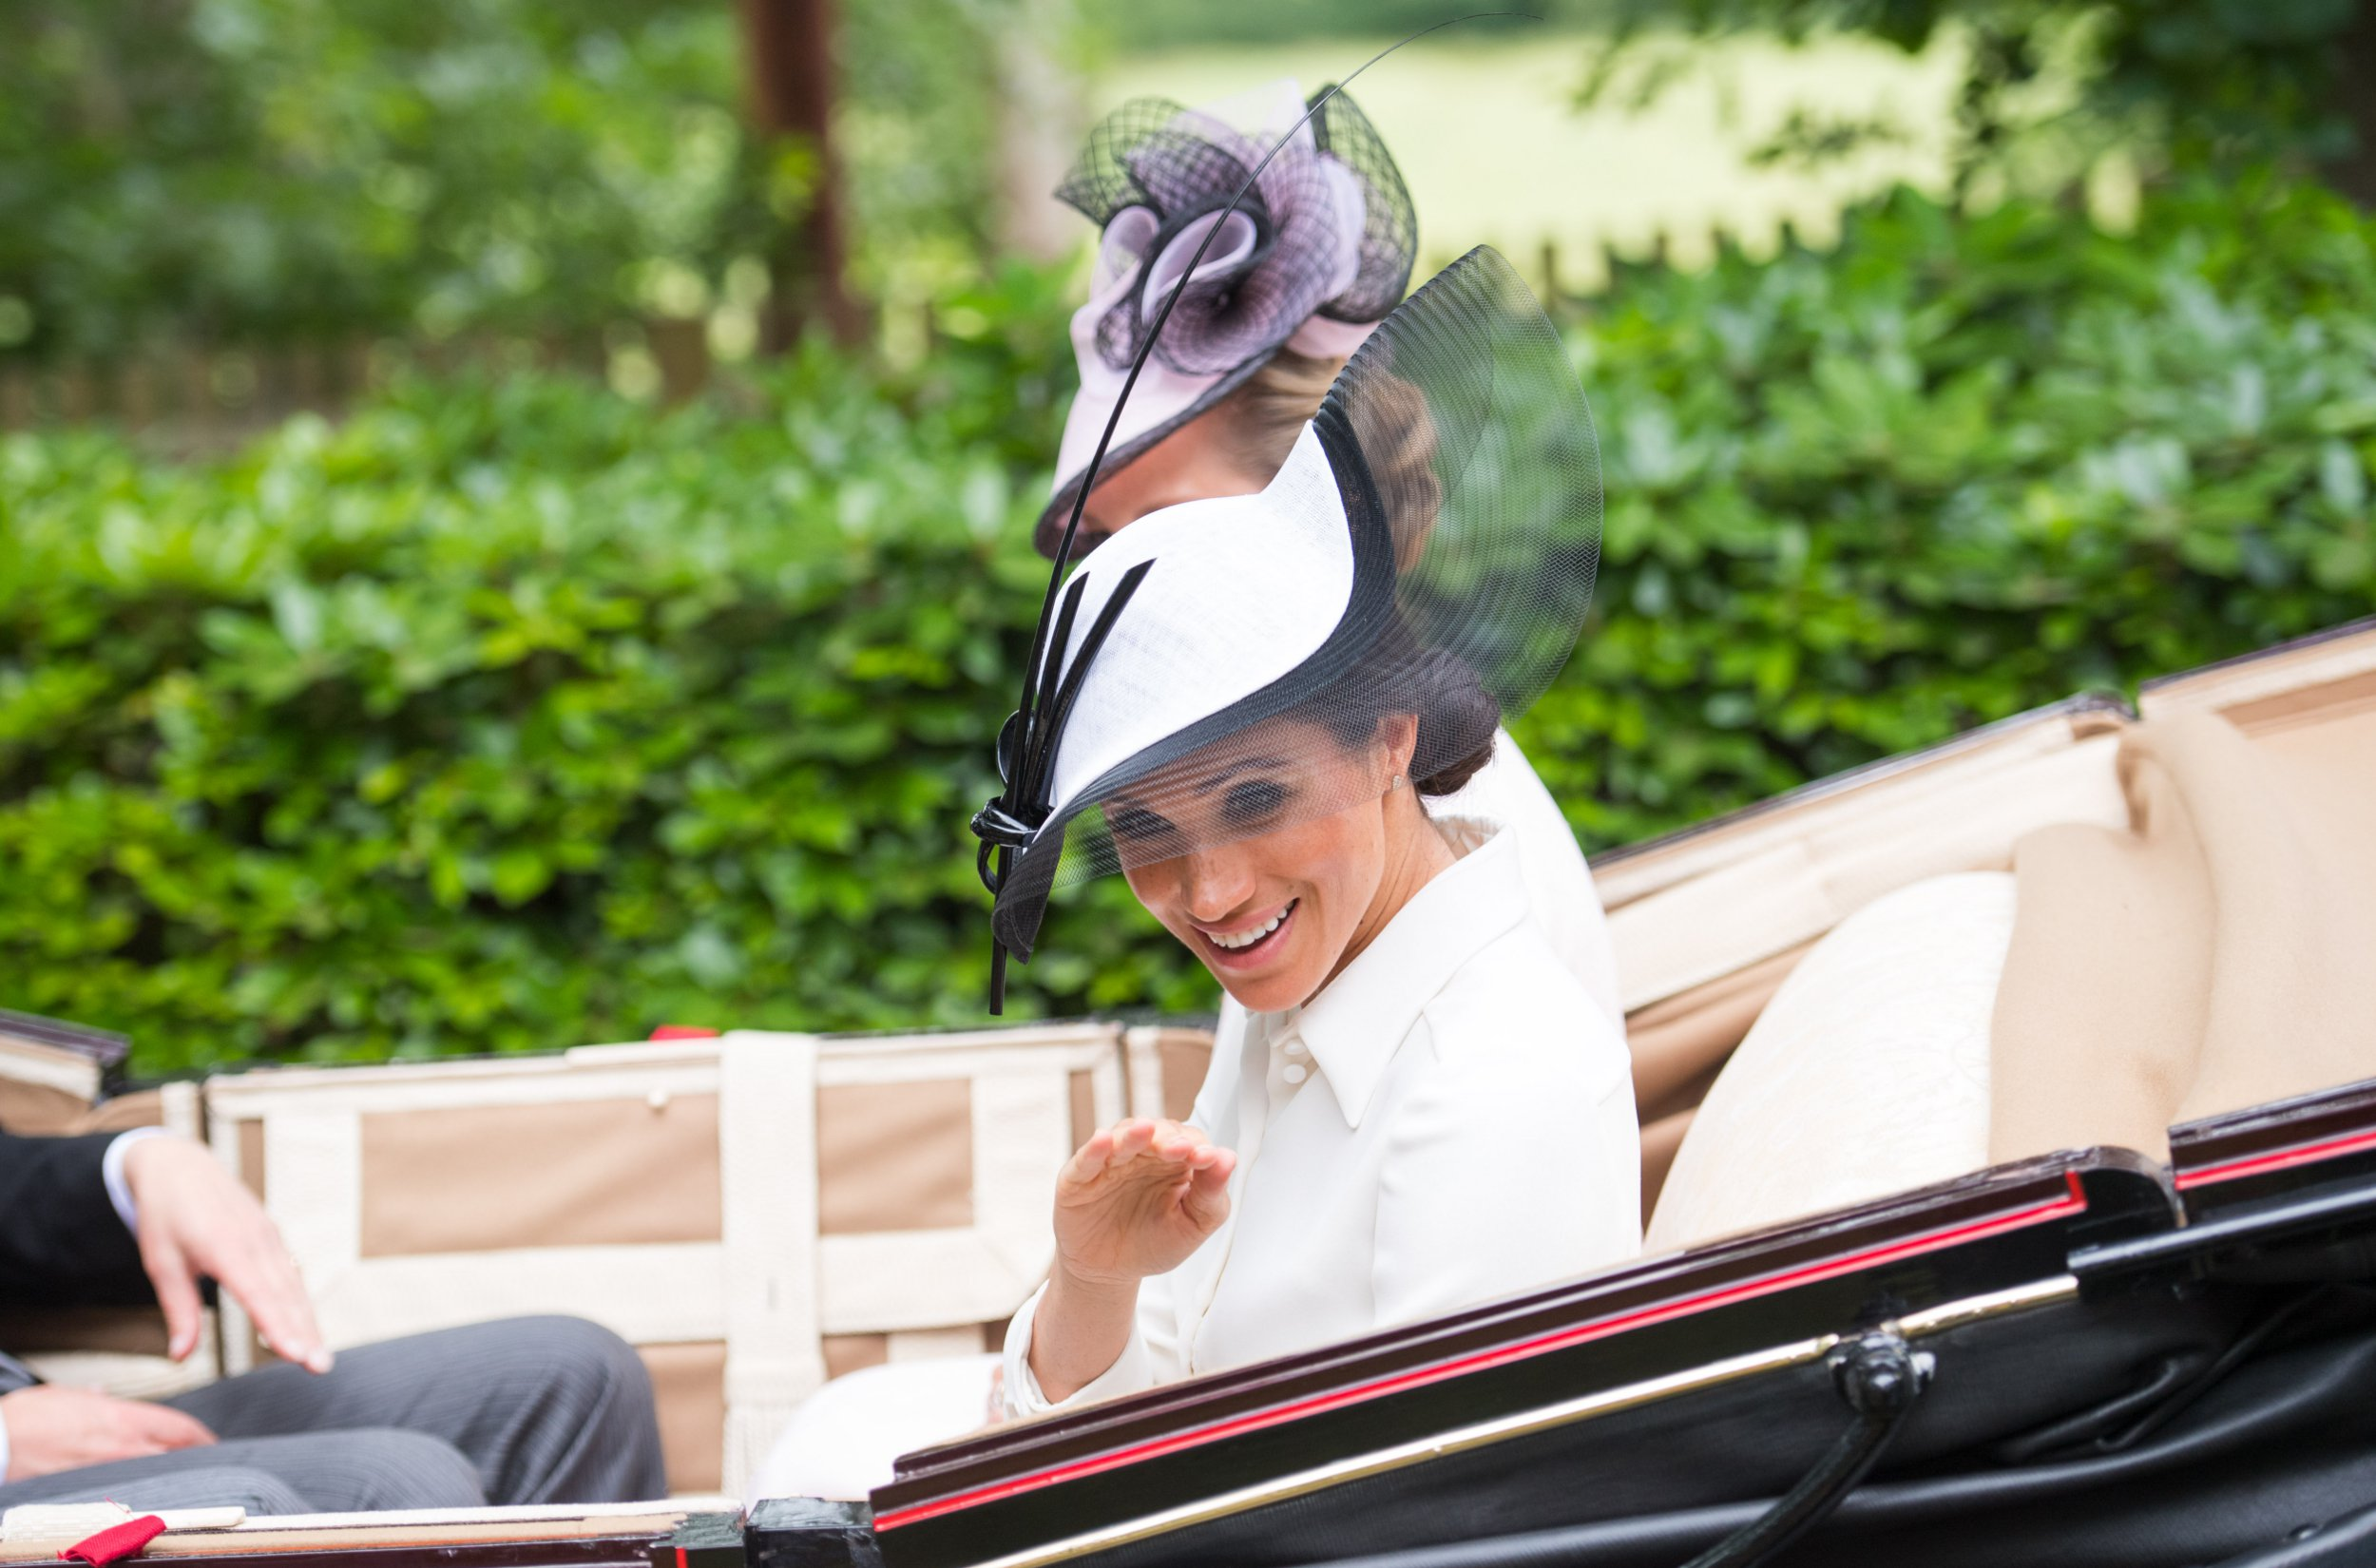 Royals arrive for day one of Royal Ascot 2018 Pictured: Meghan,the Duchess of Sussex Ref: SPL5004812 190618 NON-EXCLUSIVE Picture by: SplashNews.com Splash News and Pictures Los Angeles: 310-821-2666 New York: 212-619-2666 London: 0207 644 7656 Milan: +39 02 4399 8577 photodesk@splashnews.com World Rights,